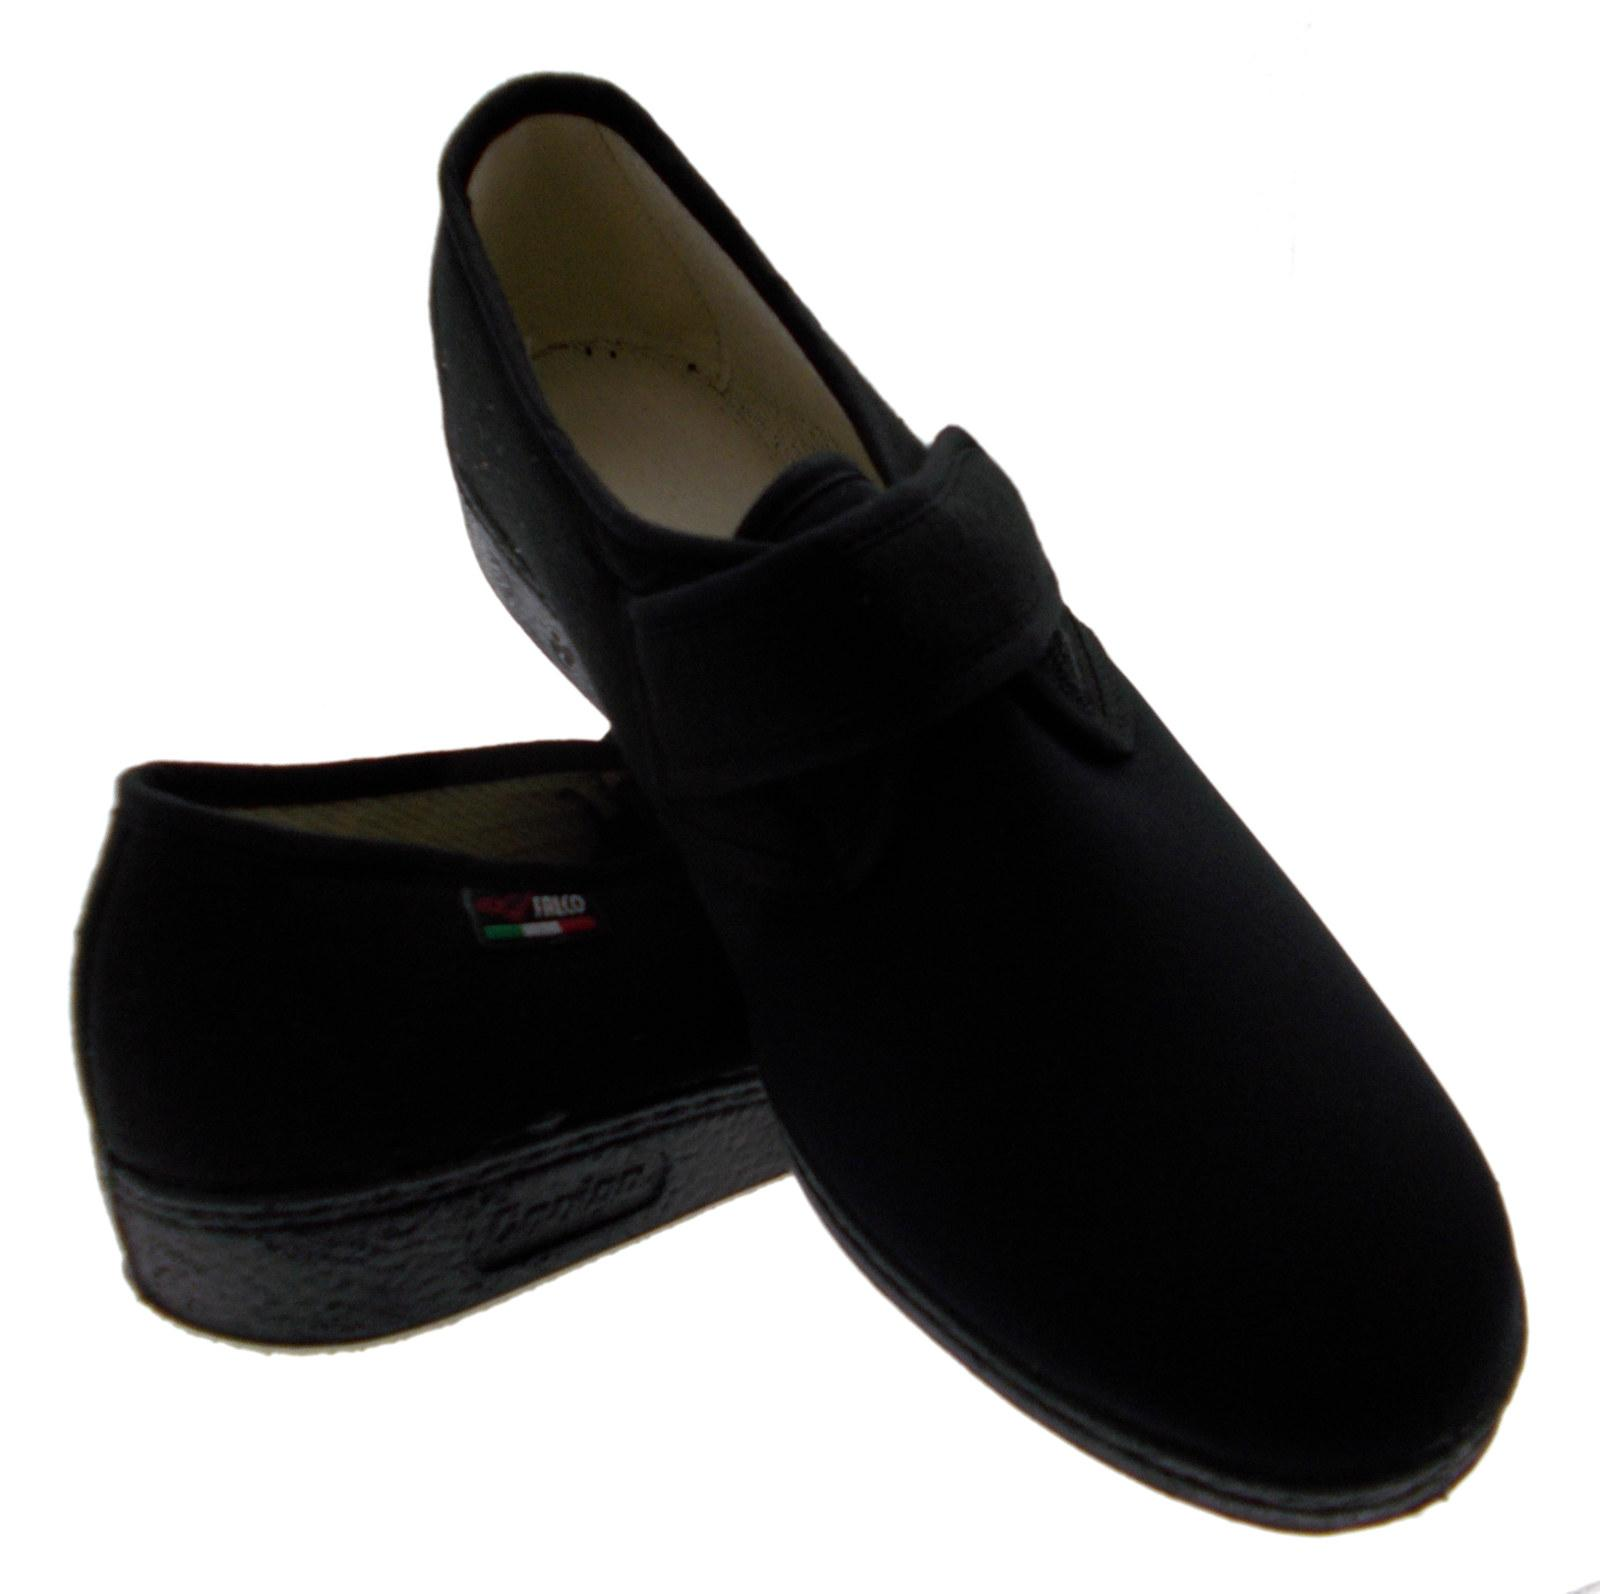 slipper Velcro stretch cotton schwarz physiotherapy extra large Article 193 Gaviga